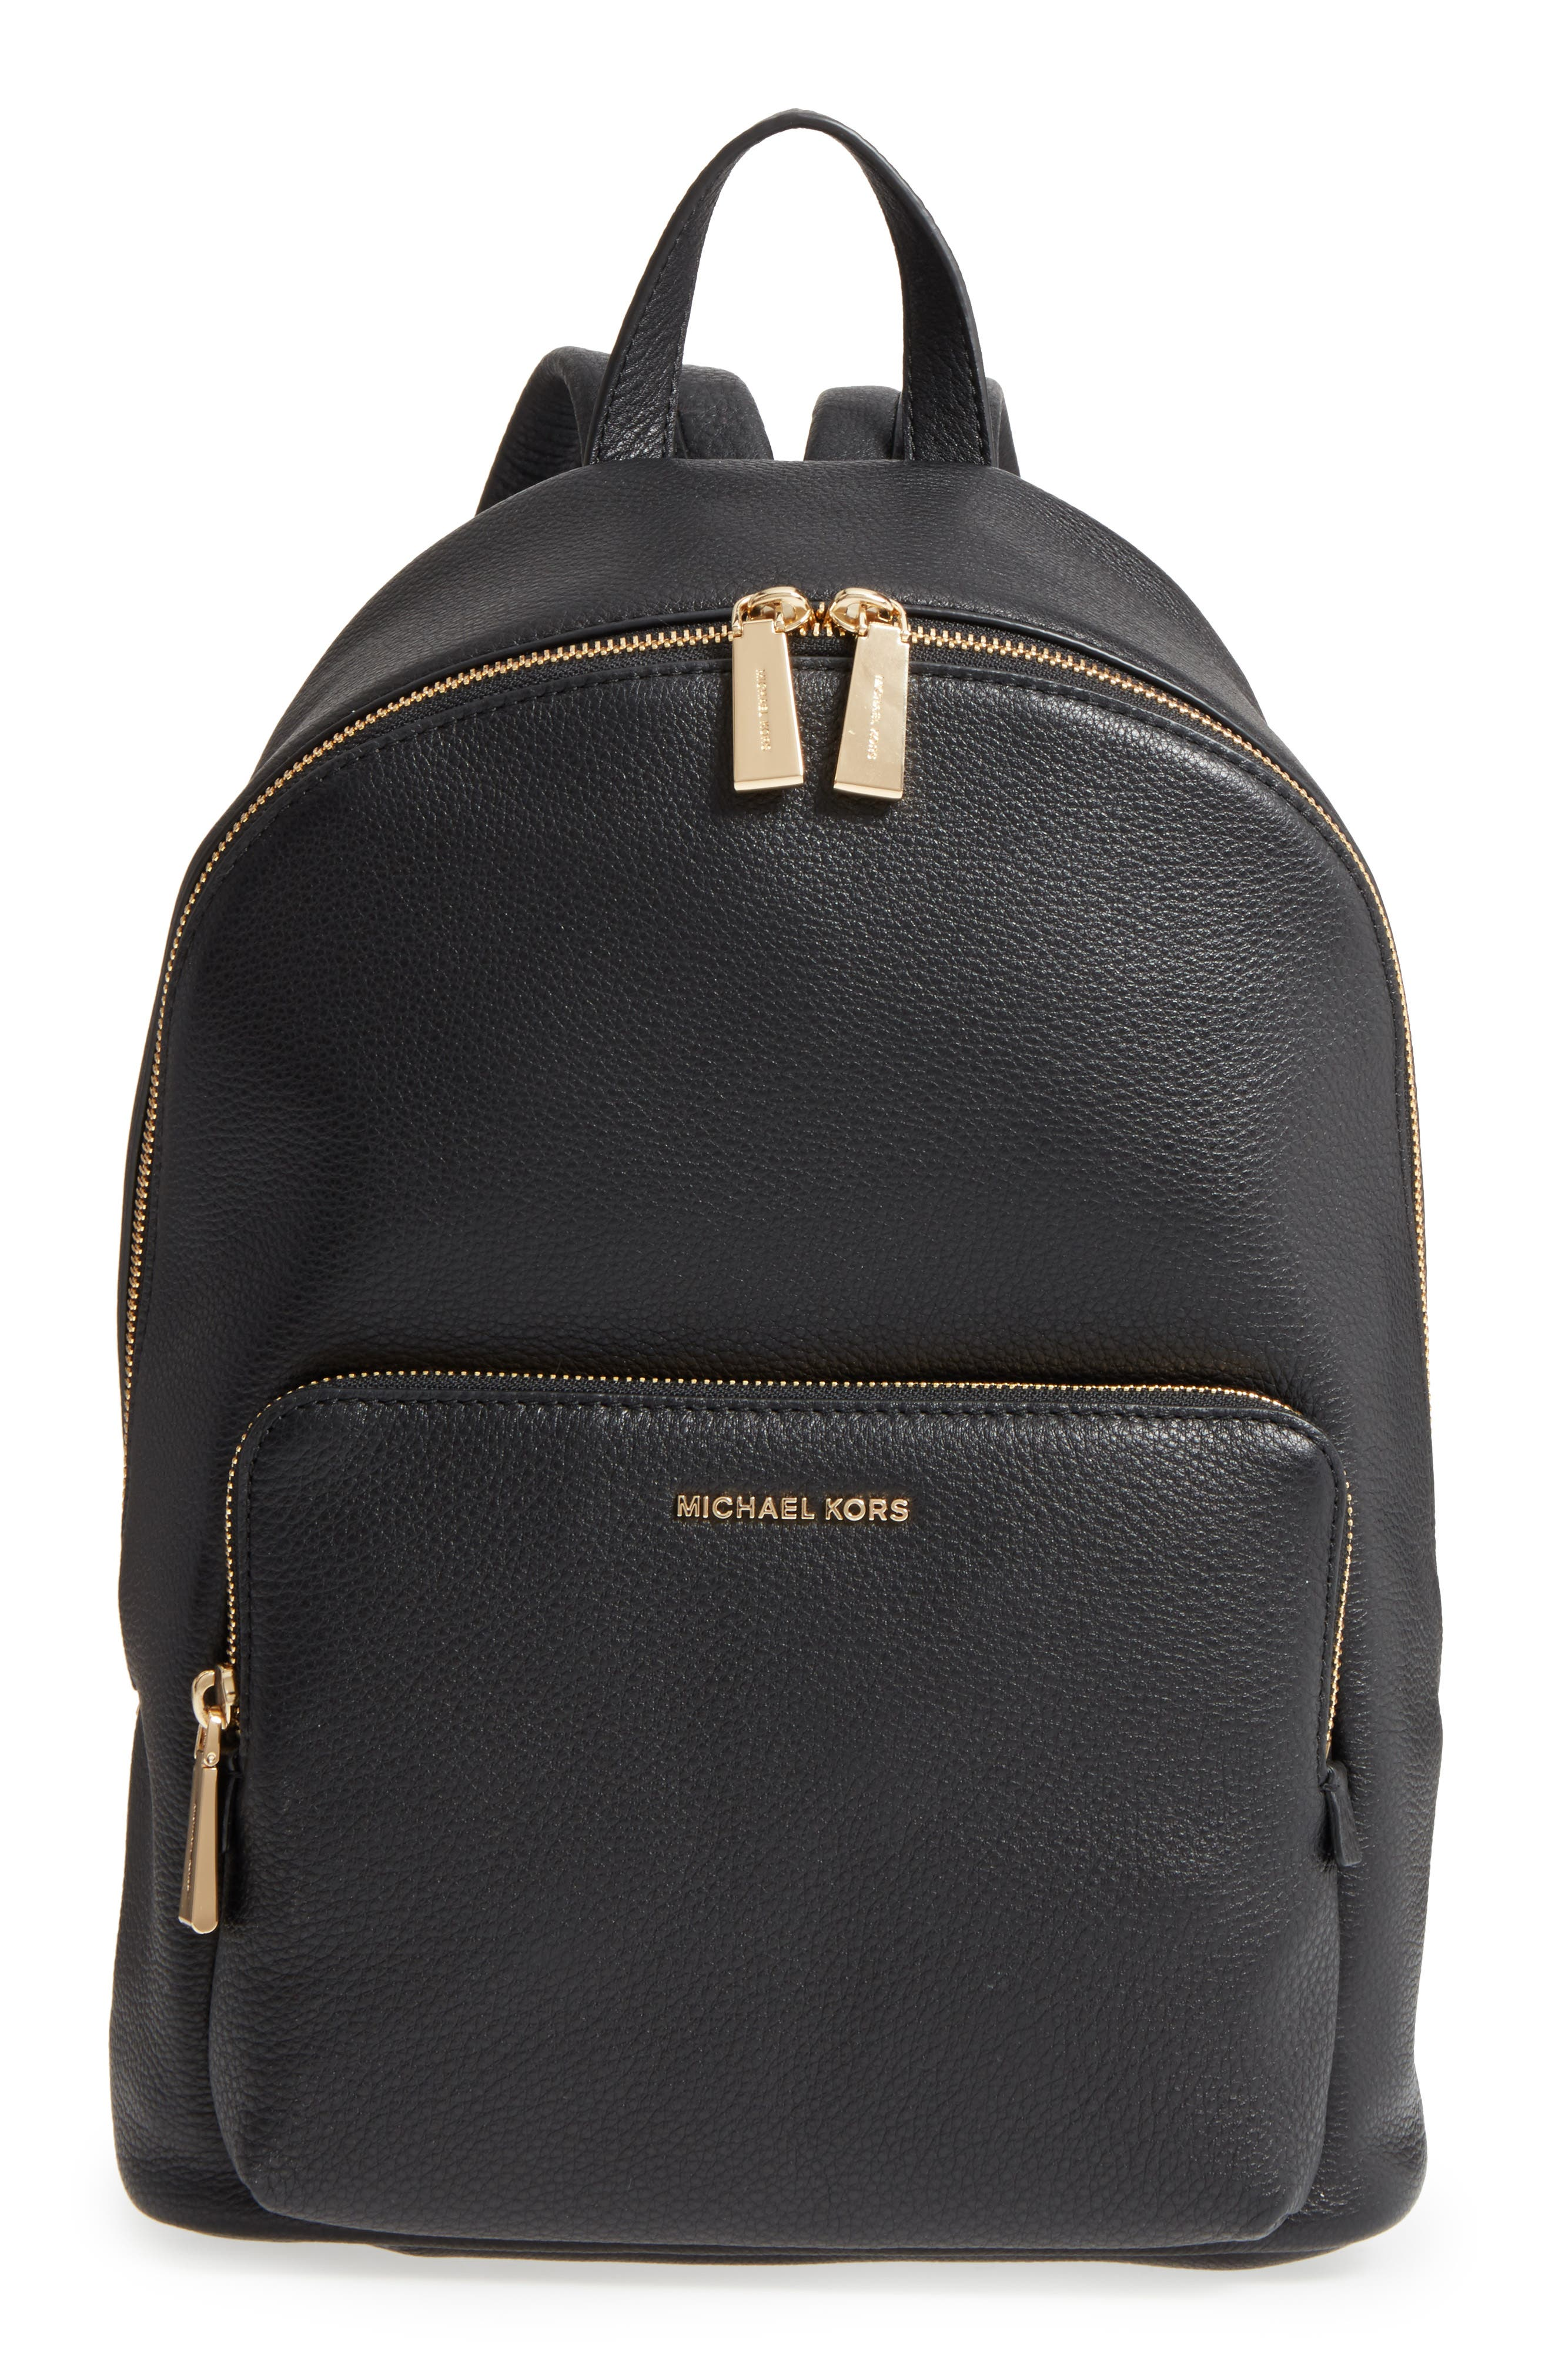 Michael Kors Large Wythe Leather Backpack